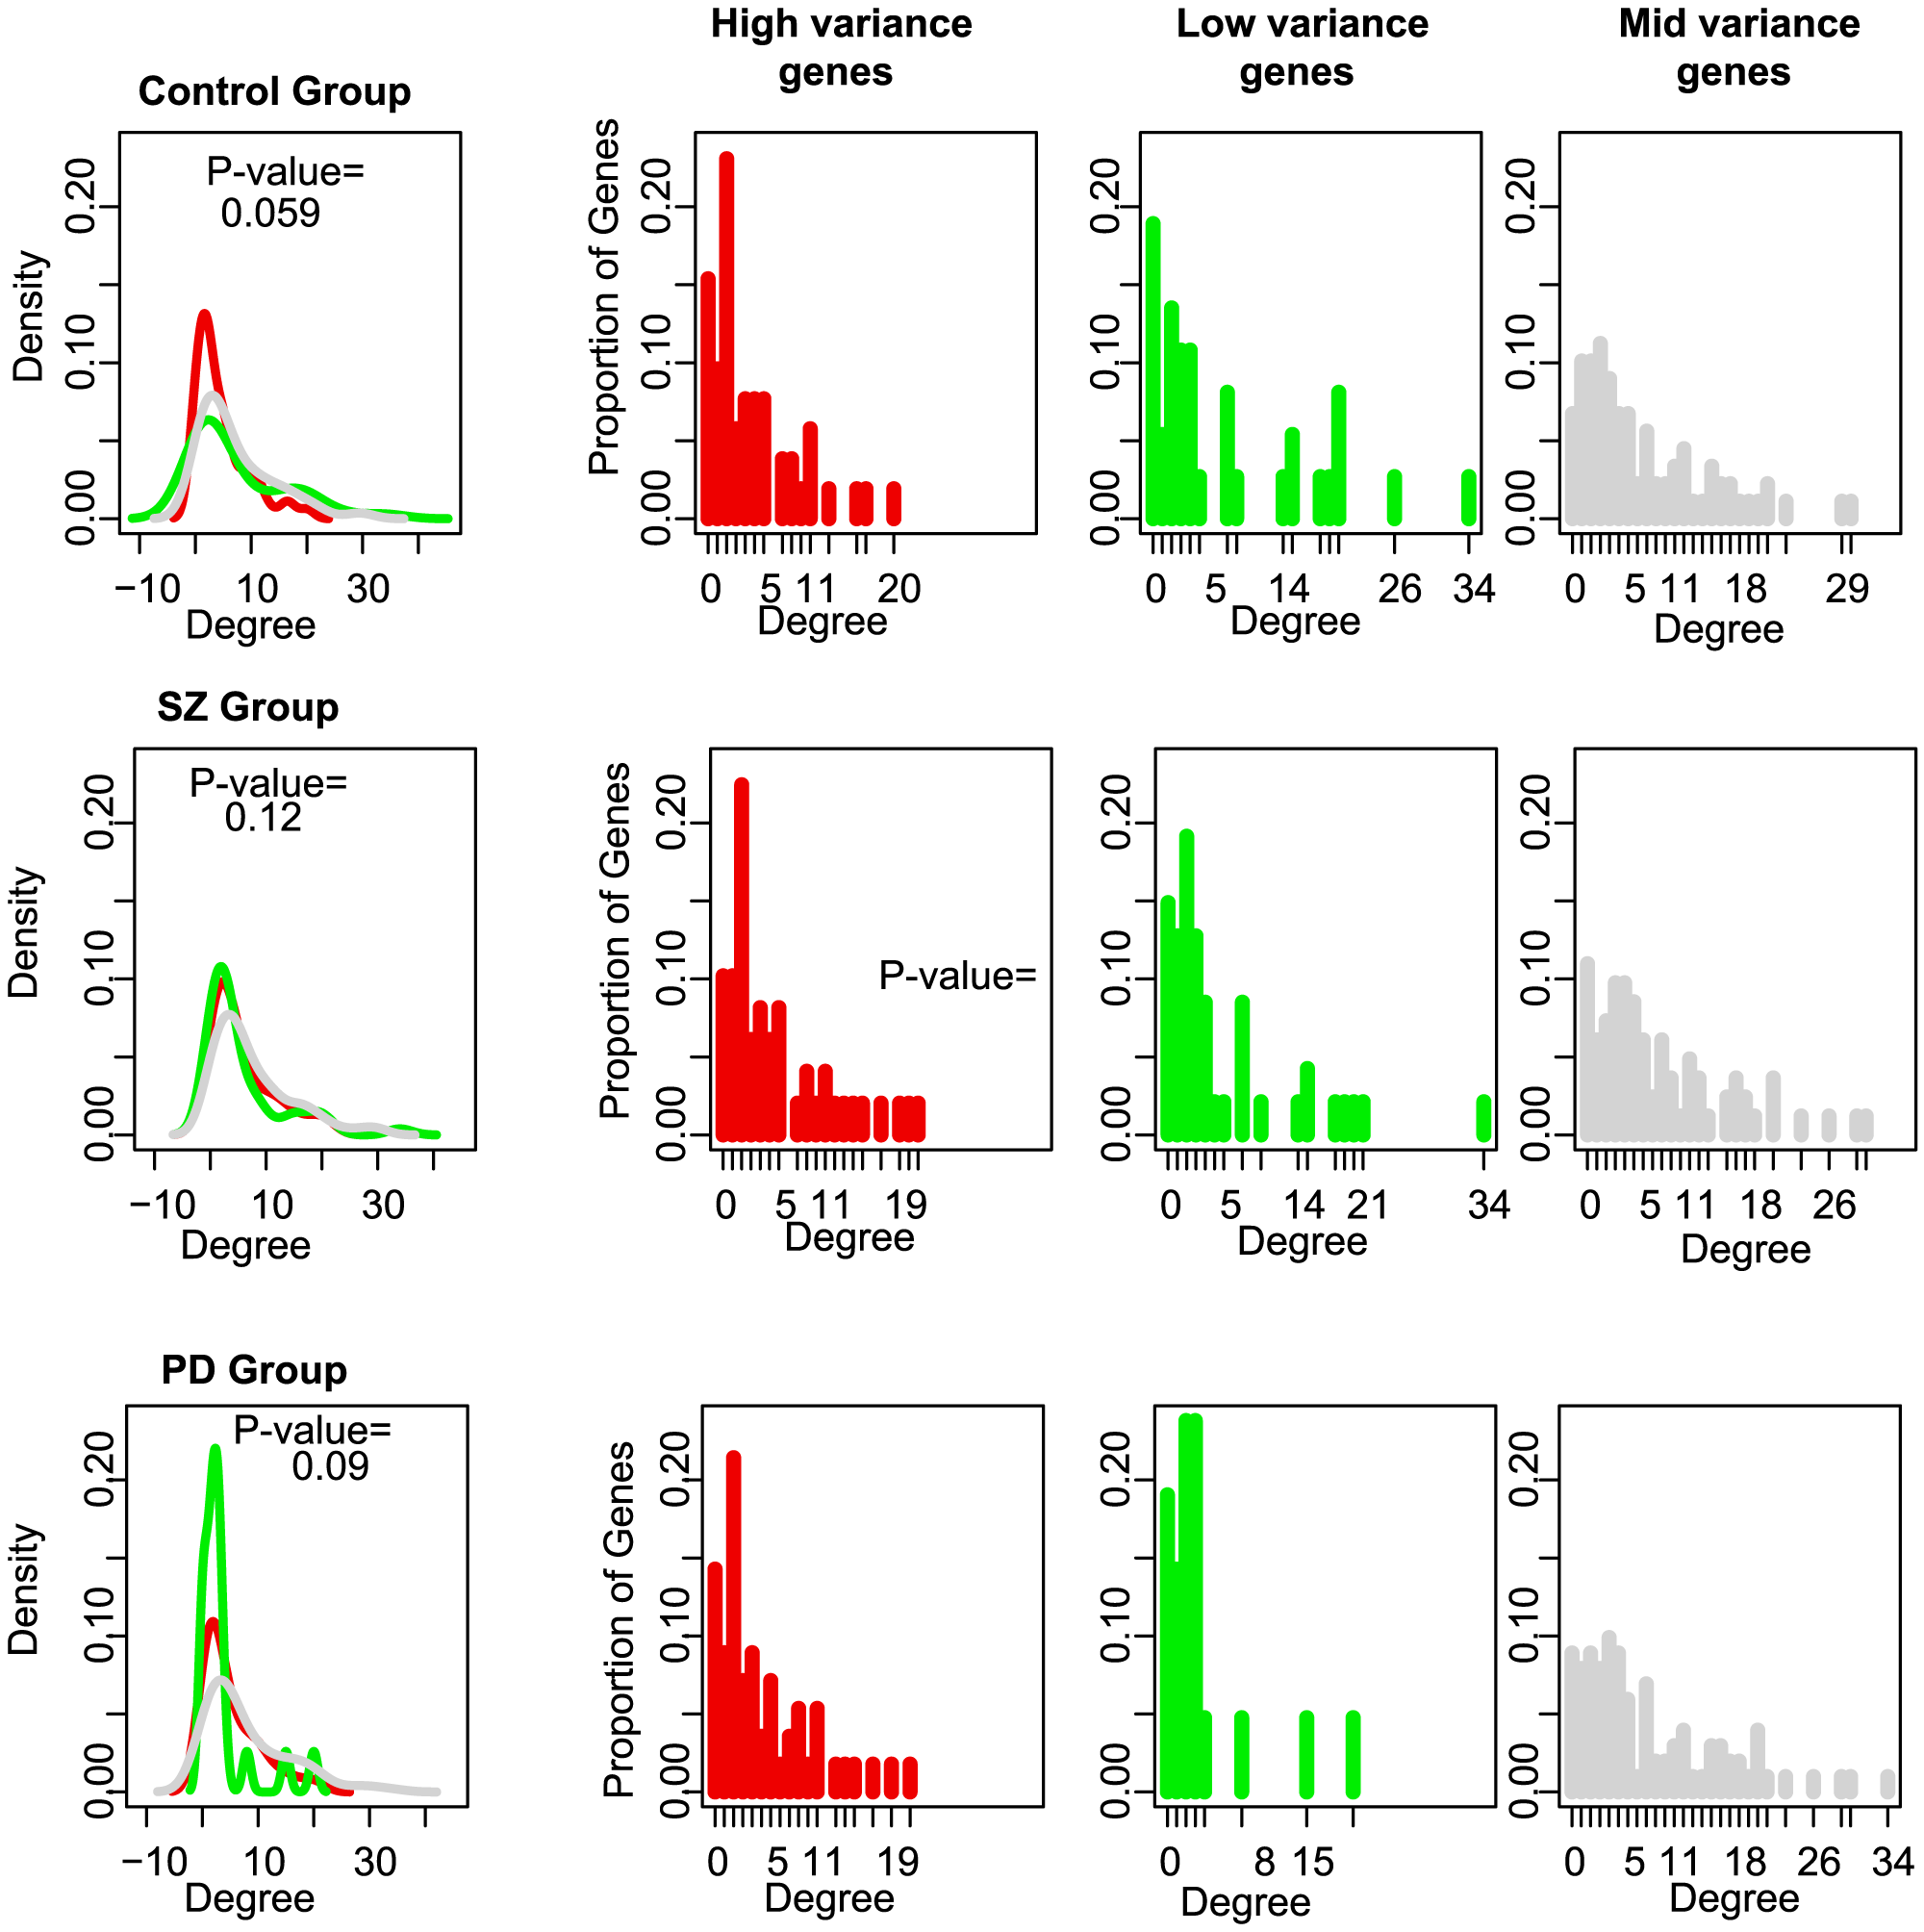 MAPK interaction networks and degree distribution density curves for the highly-constrained (red) and lowly-constrained (green) genes.